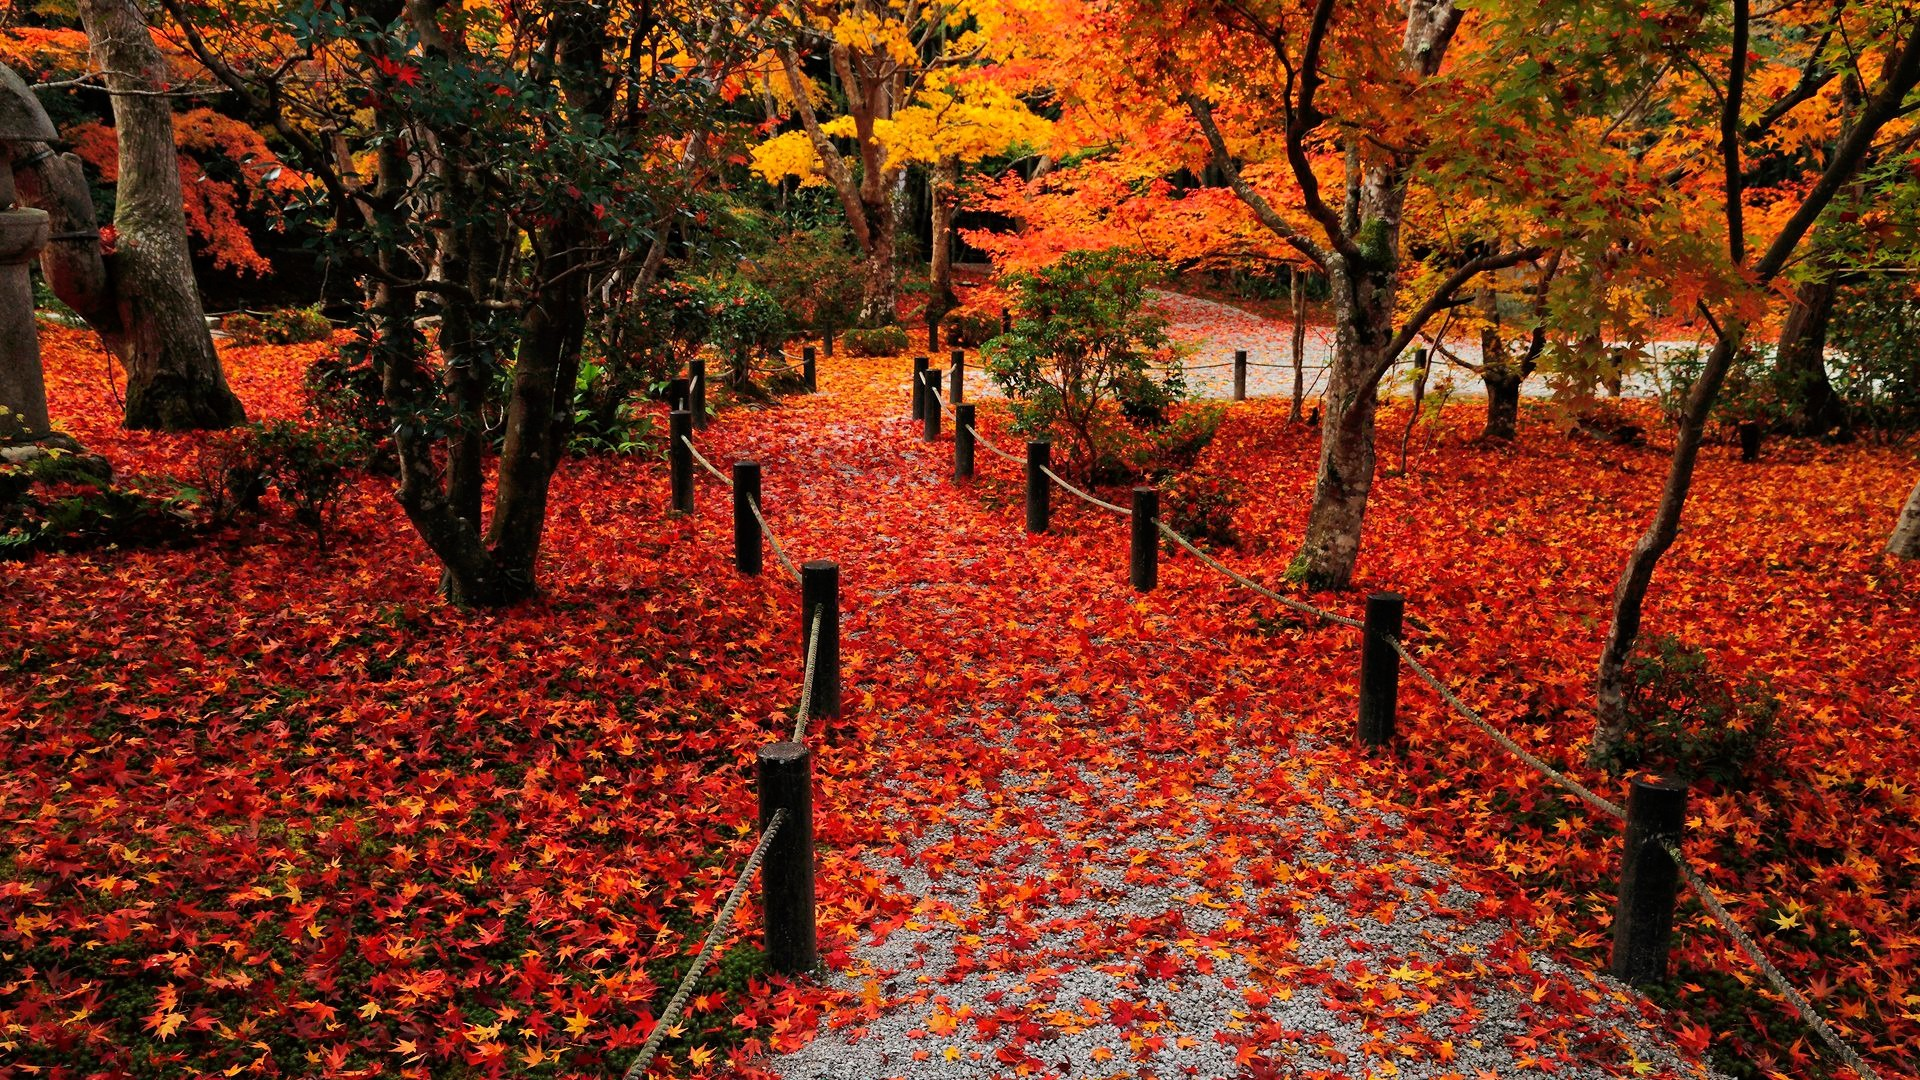 autumn wallpaper free download